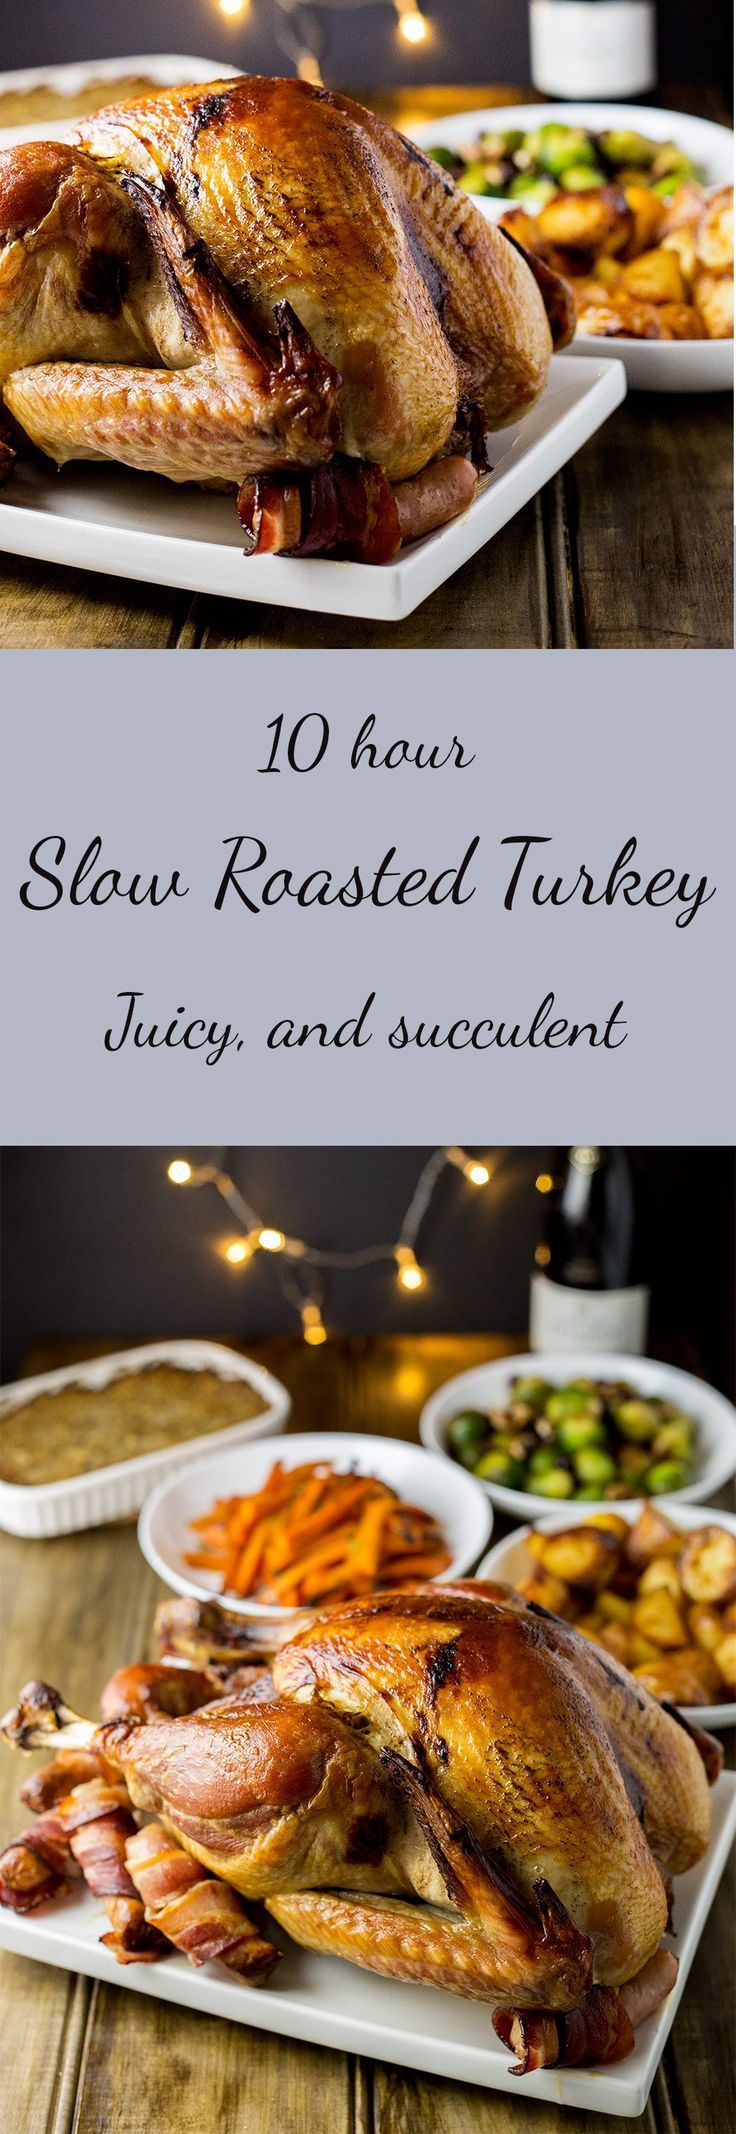 This slow roasted turkey is juicy and so simple. Without any basting, brining or intricate butter rubbing bacon weaving, you get a moist delicious bird.  AND it is cooked slowly overnight, meaning your oven is free for all the other Thanksgiving/Christmas goodies!!!!